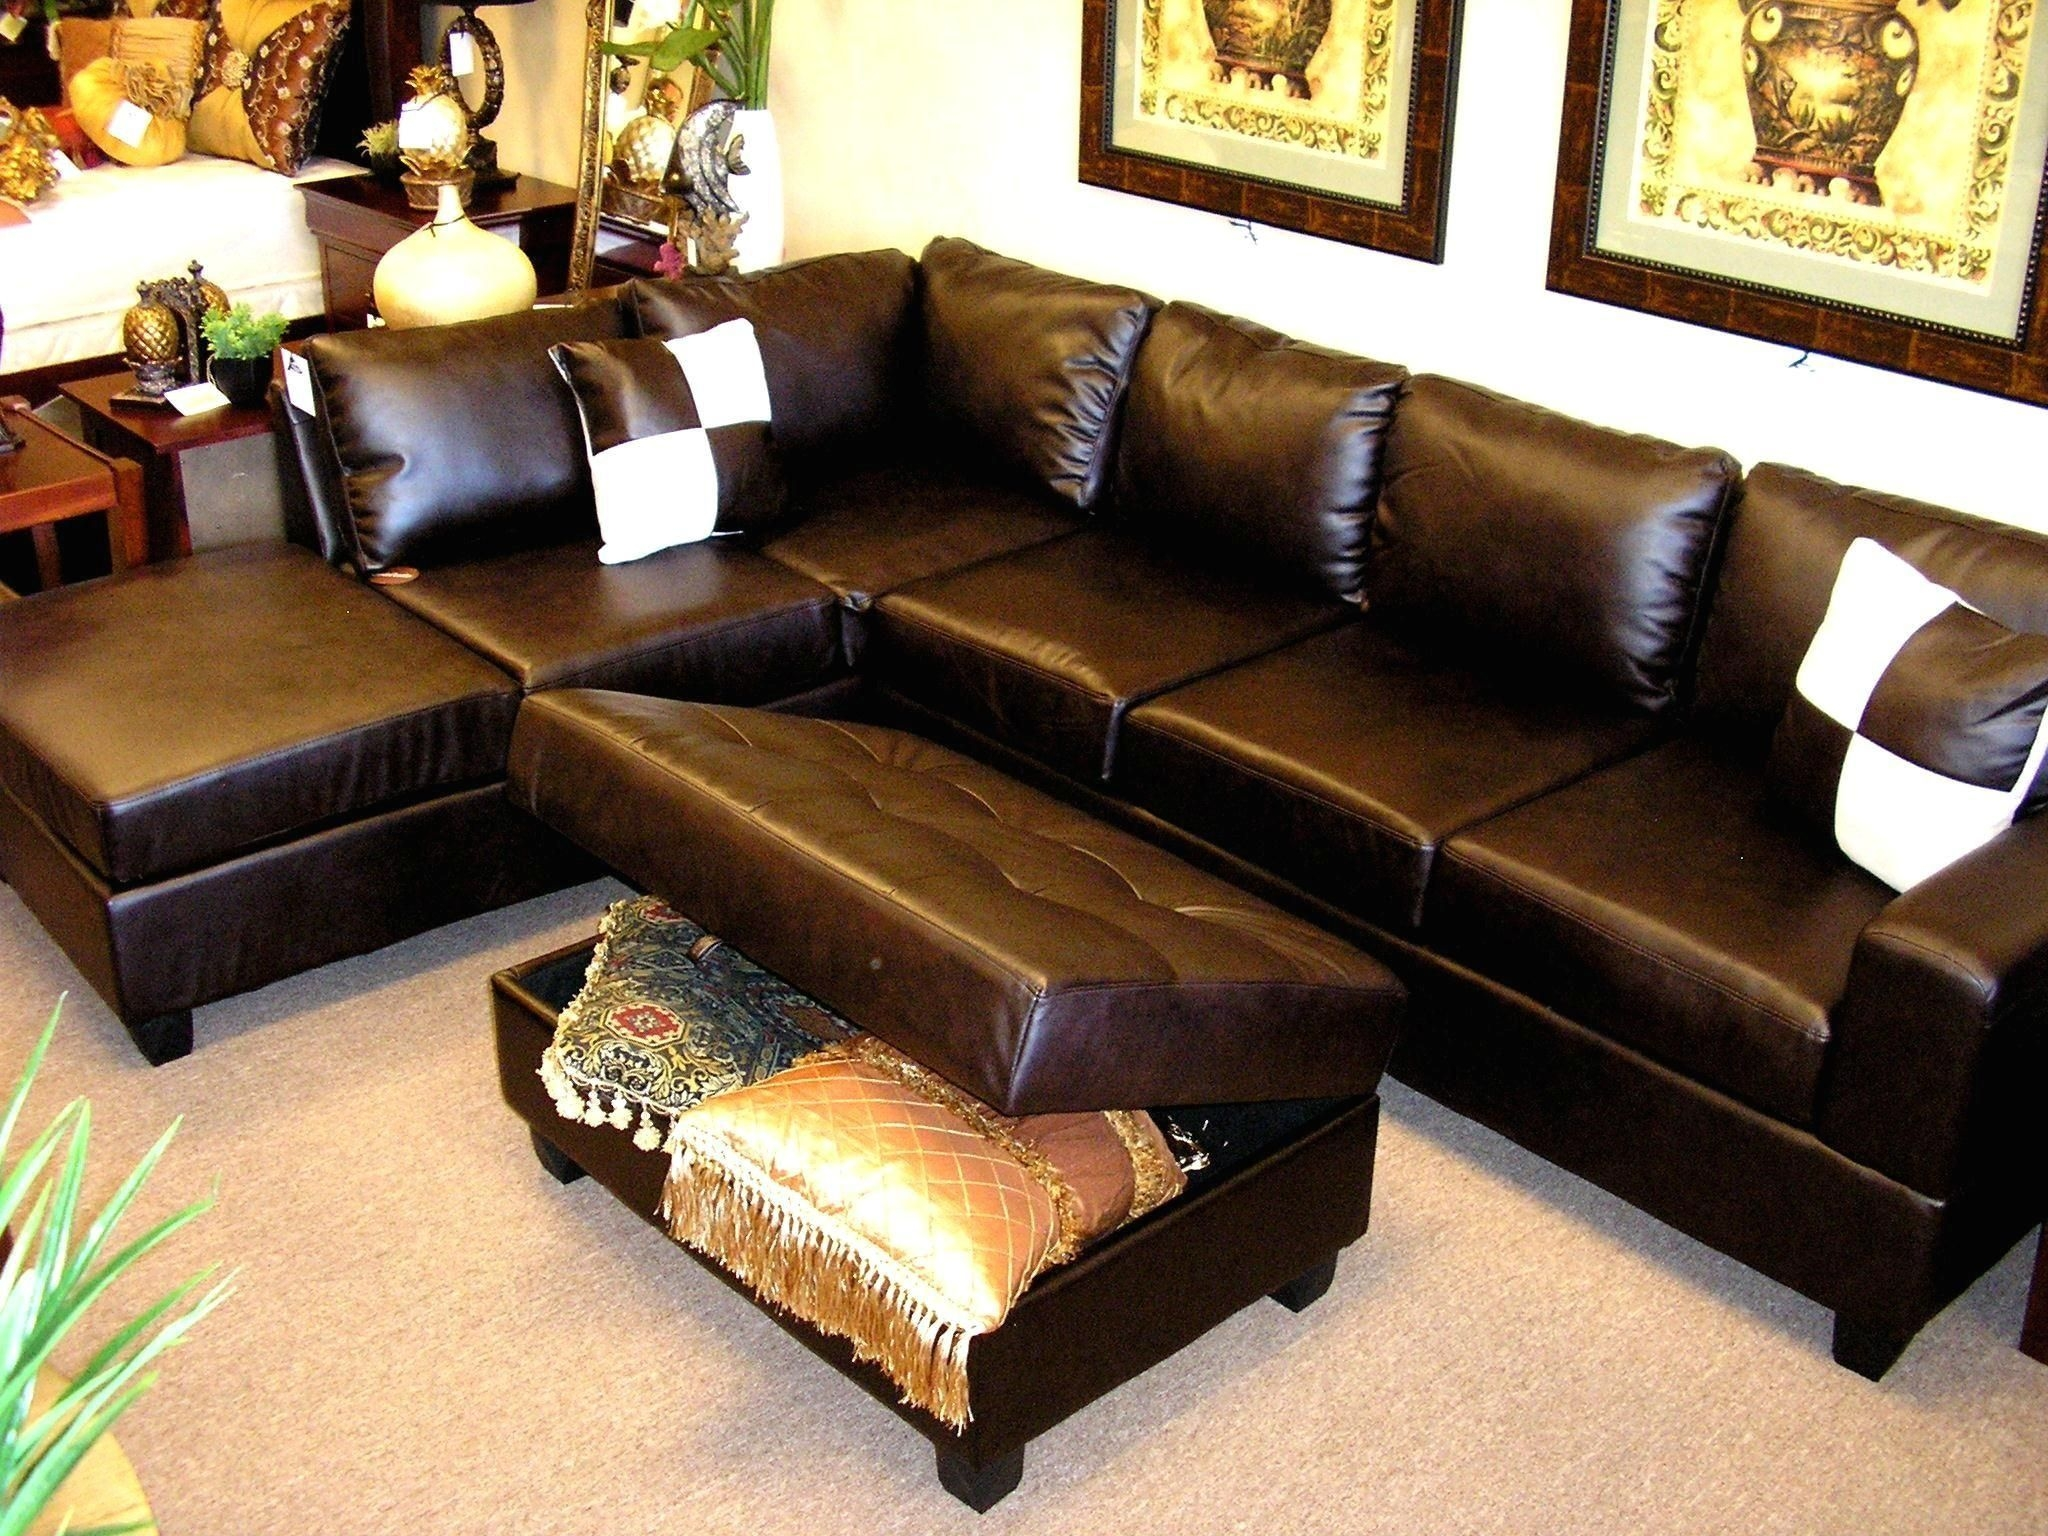 Large Sectional Sofas.Extra Large Leather Sectional Sofa .